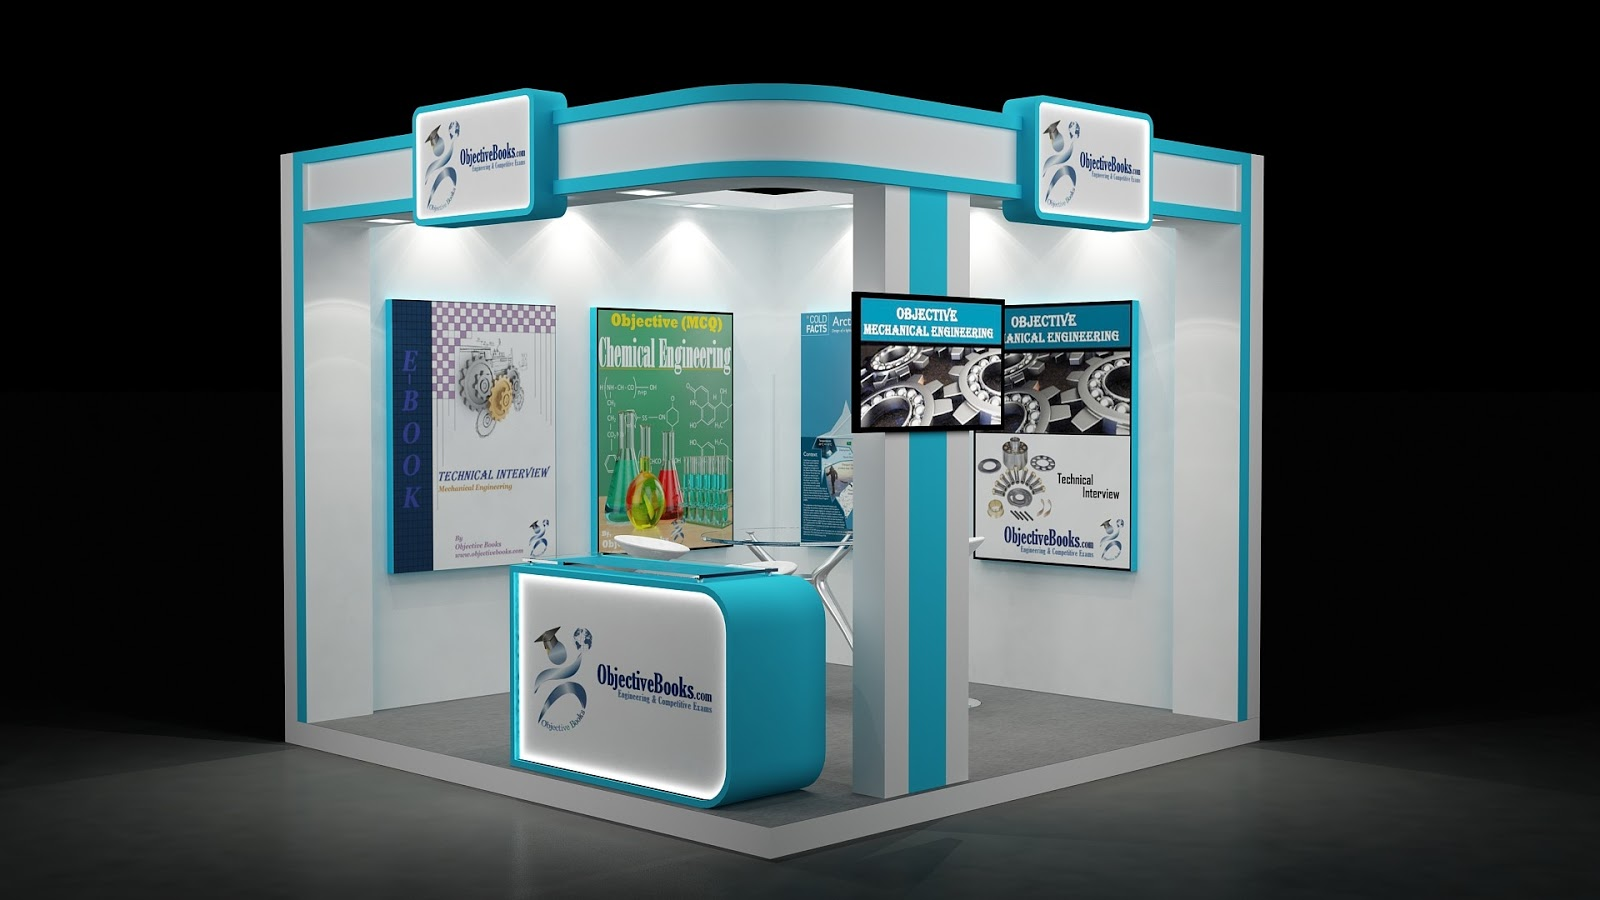 Exhibition Stall Design Plan : Exhibition stall design mazic door